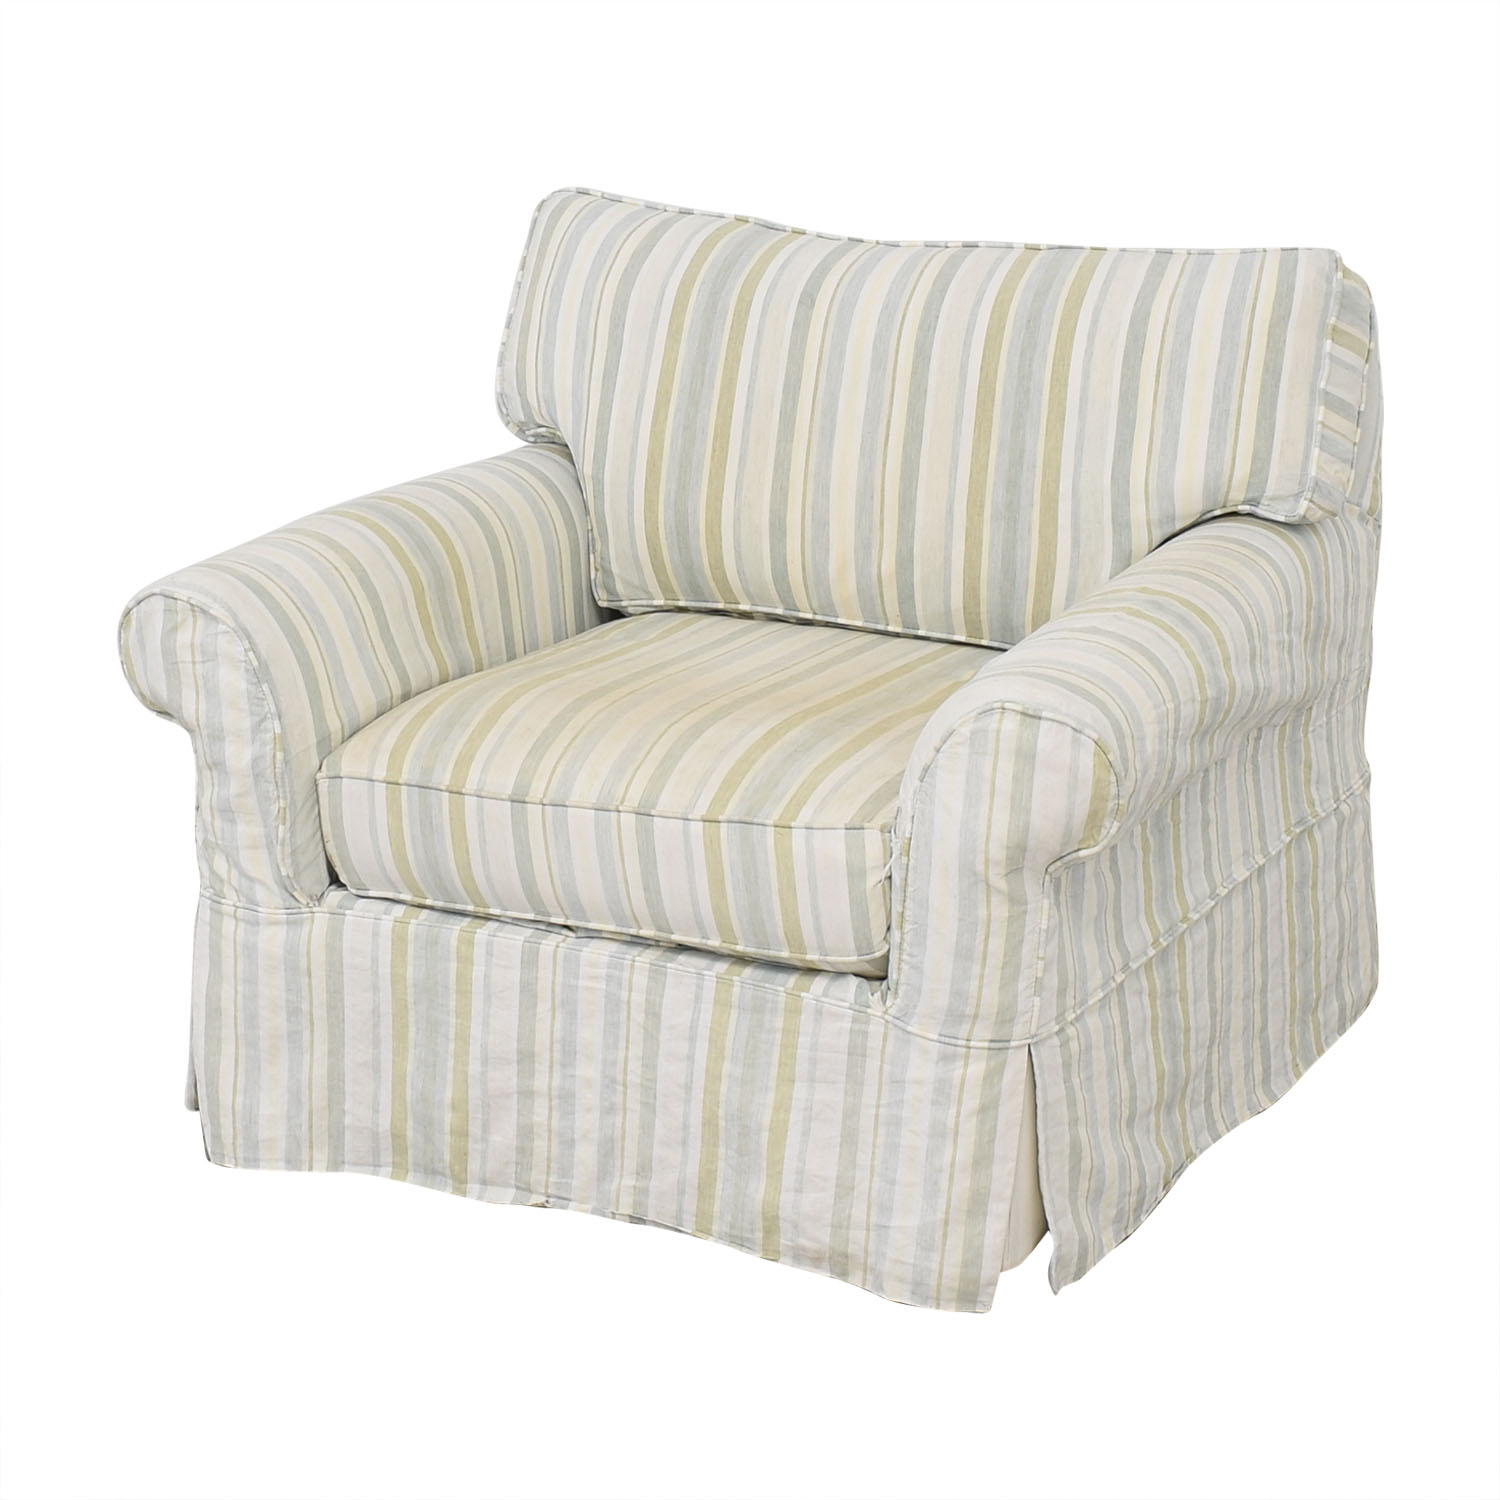 Crate & Barrel Crate & Barrel Slipcovered Accent Chair dimensions